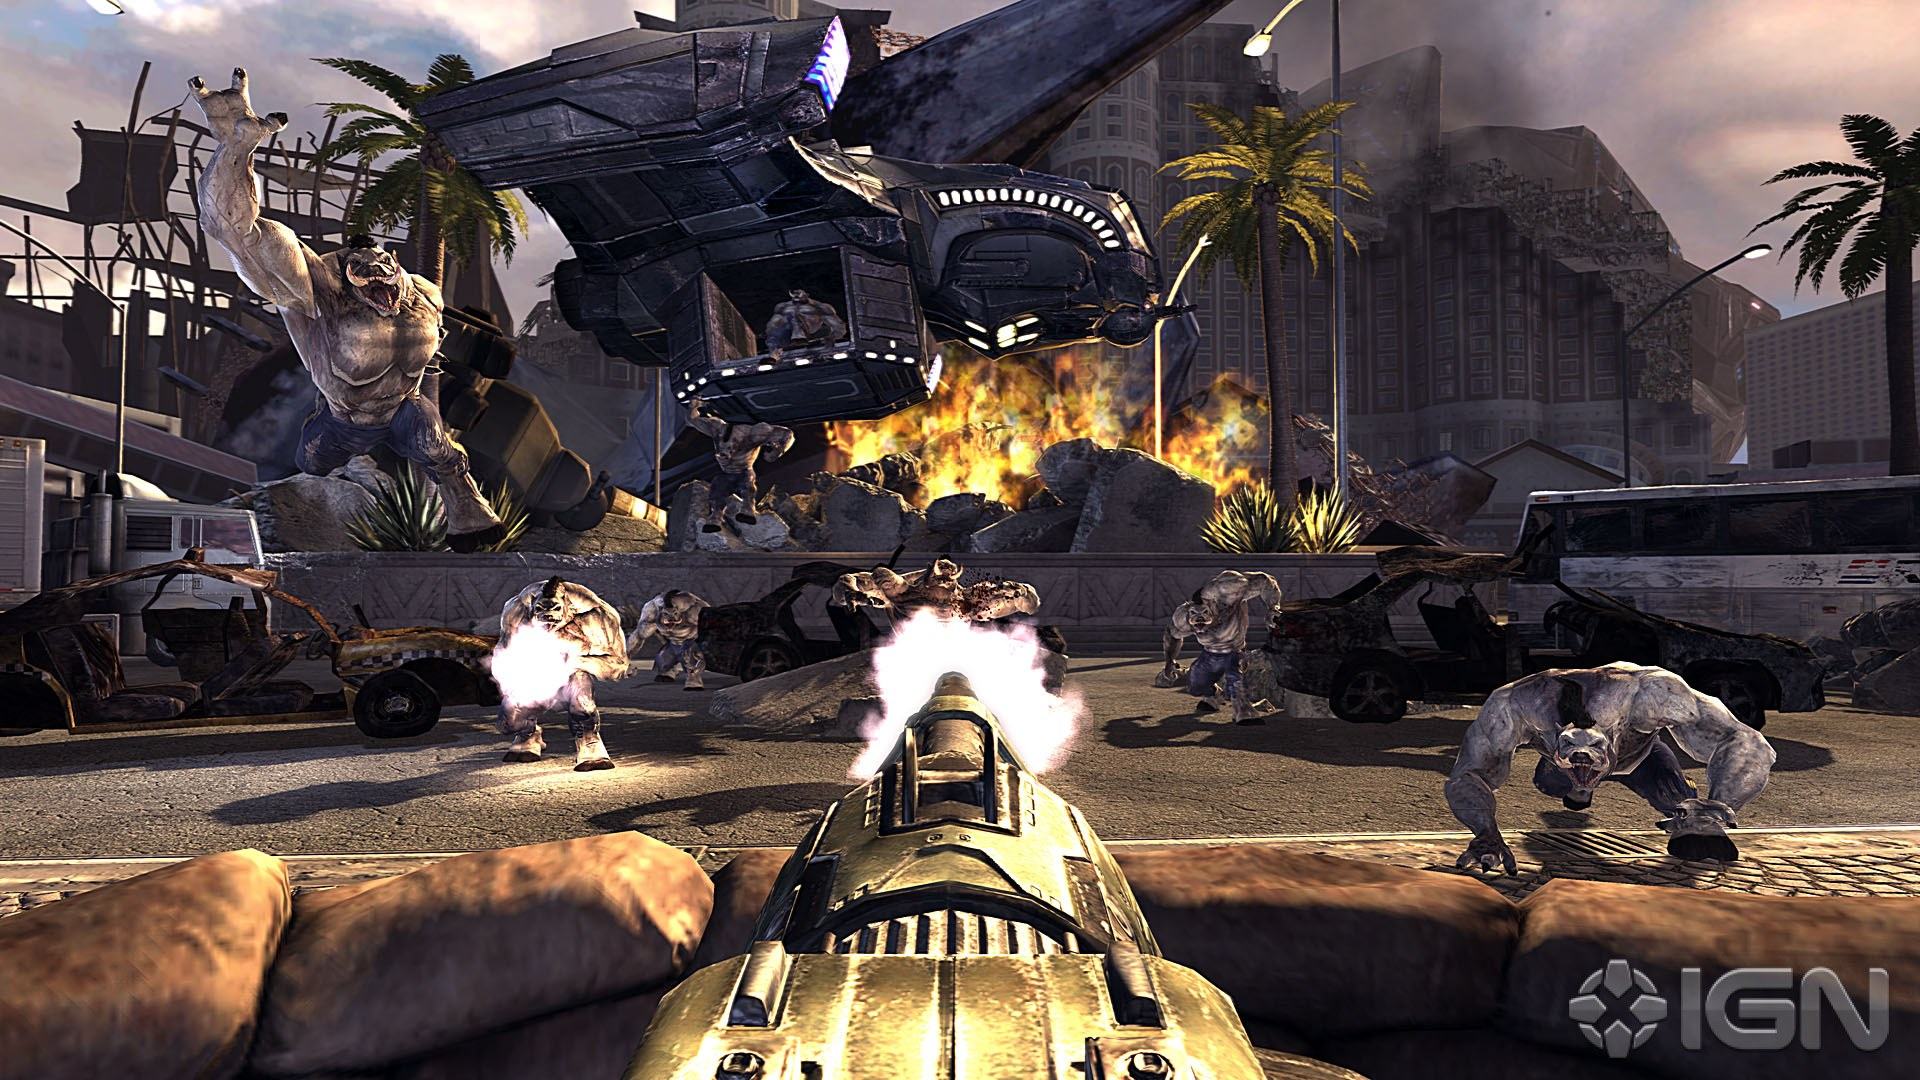 hd wallpapers duke nukem forever wallpapers hd wallpapers hq hd 1920x1080